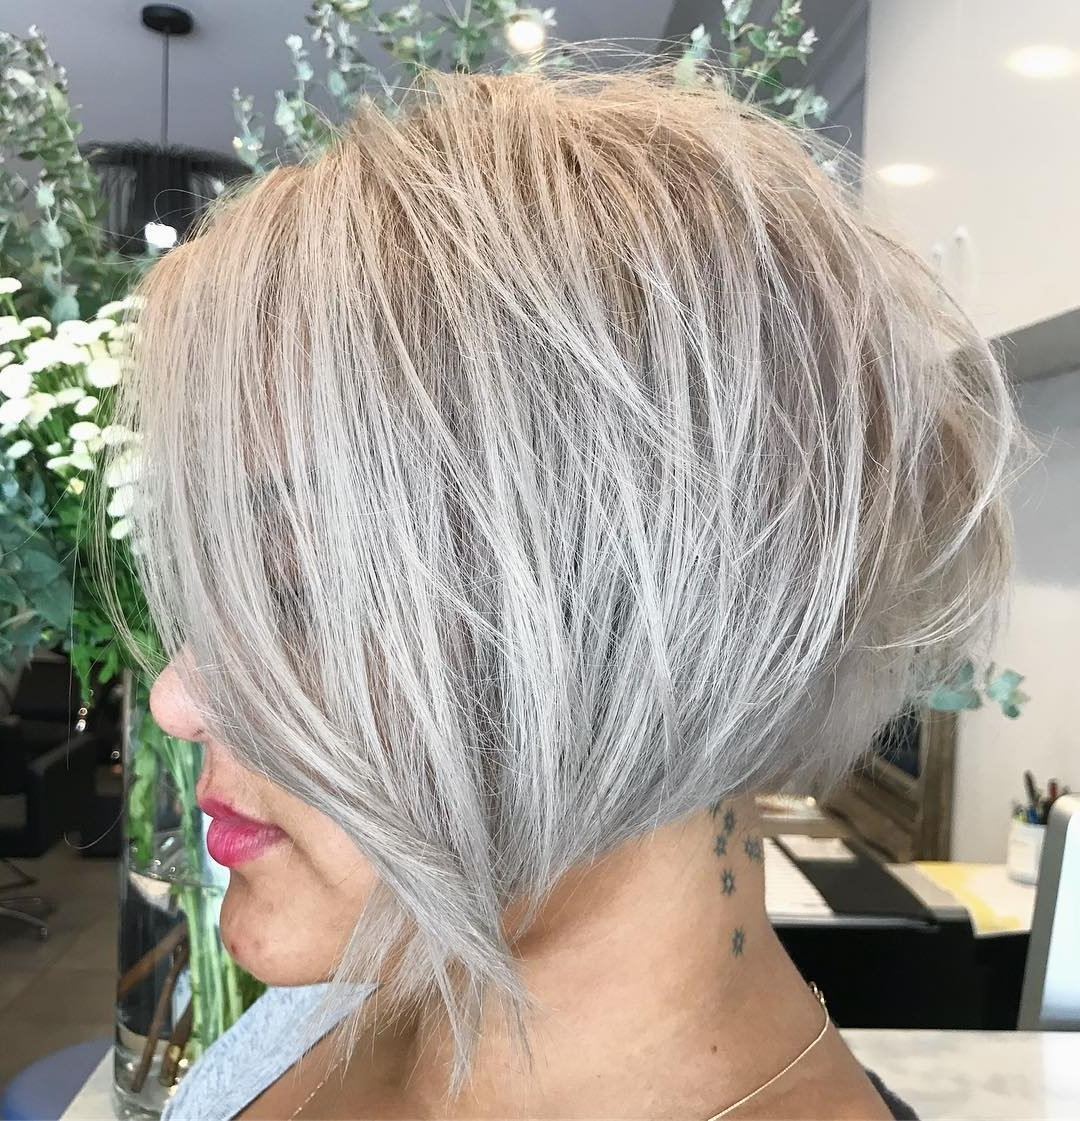 Concave Bob Hairstyles   8 Sexiest Cuts You Have To Try   Amr With Cool Toned Angled Bob Hairstyles (View 15 of 20)